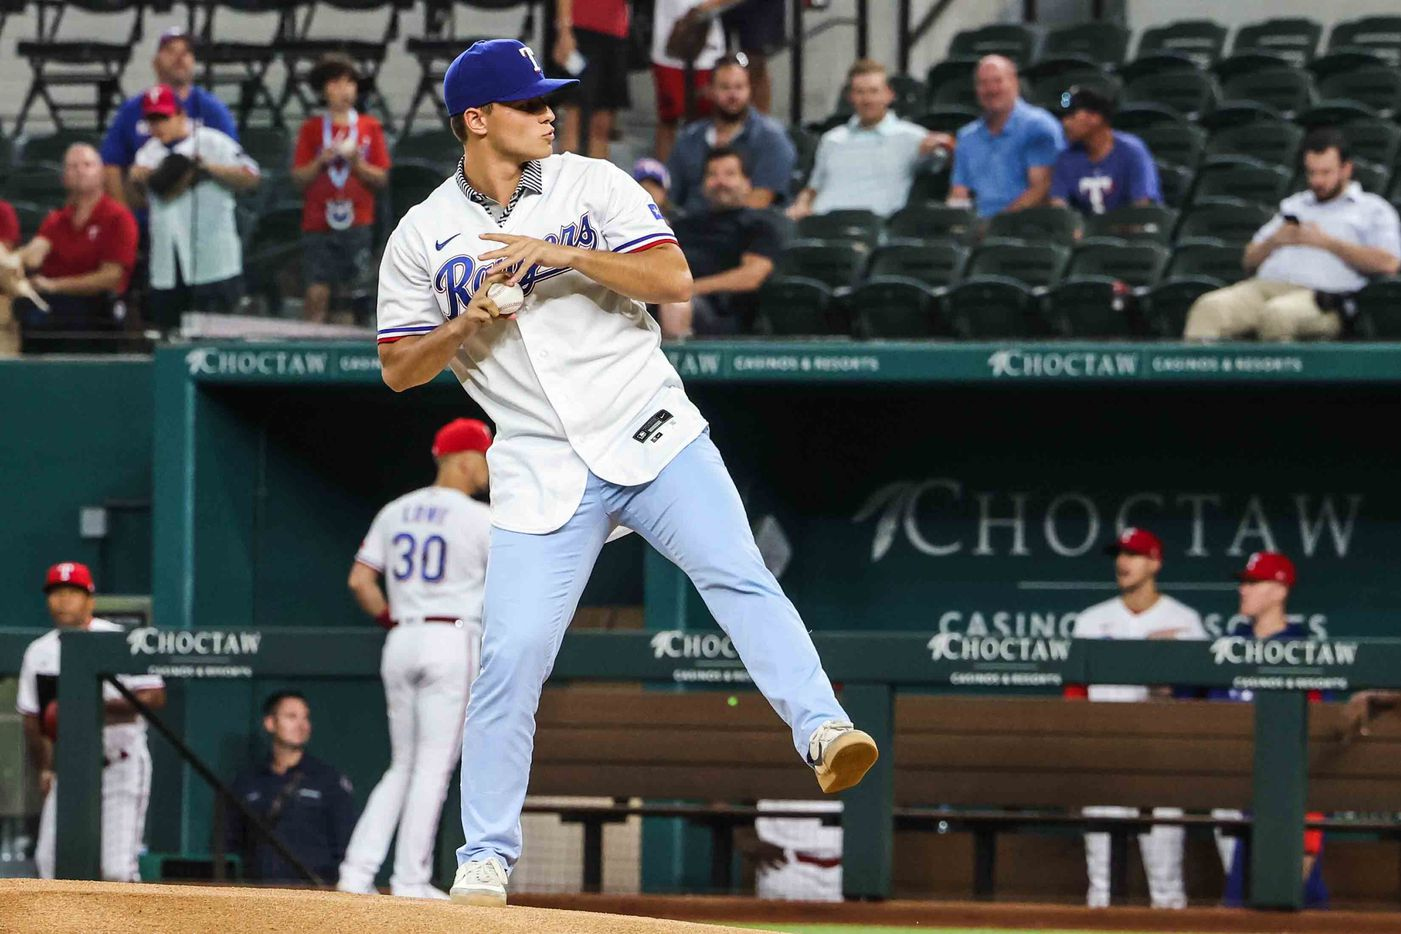 First pitch by Jack Leiter for Arizona Diamondbacks at Texas Rangers at the Globe Life Field in Arlington, Texas on Wednesday, July 28, 2021. (Lola Gomez/The Dallas Morning News)